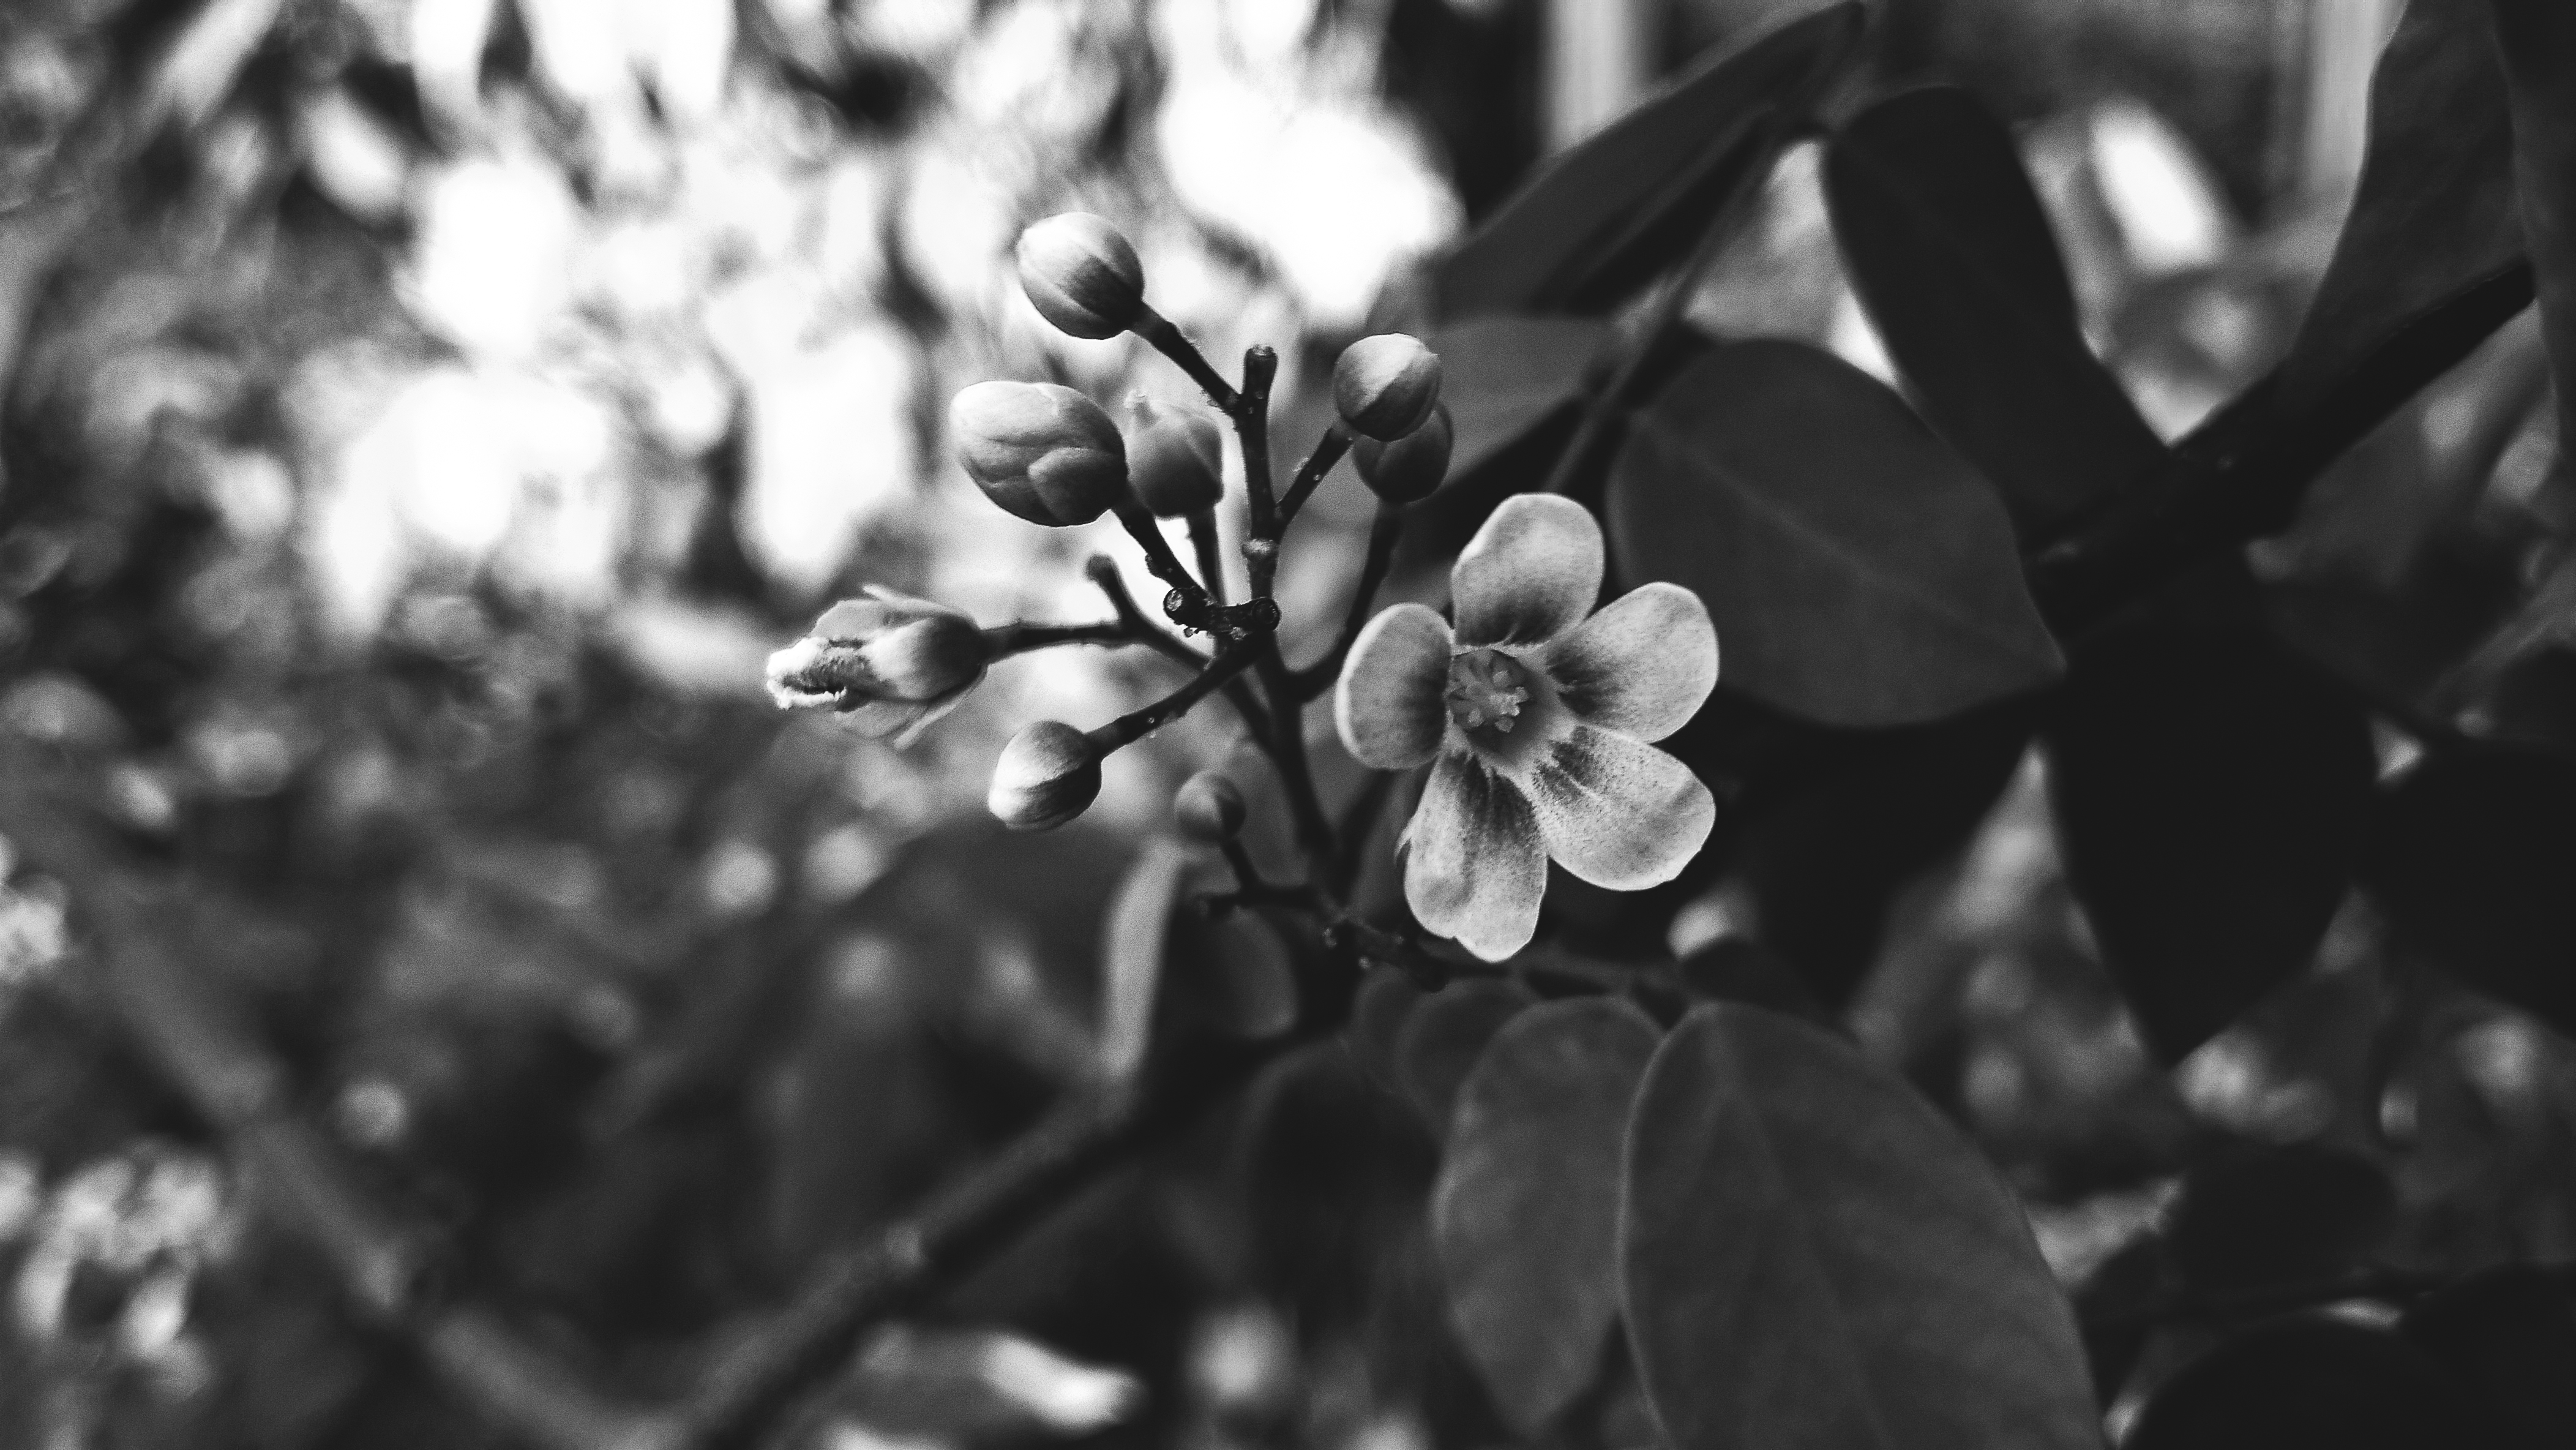 Grayscale Photography Of Flower · Free Stock Photo